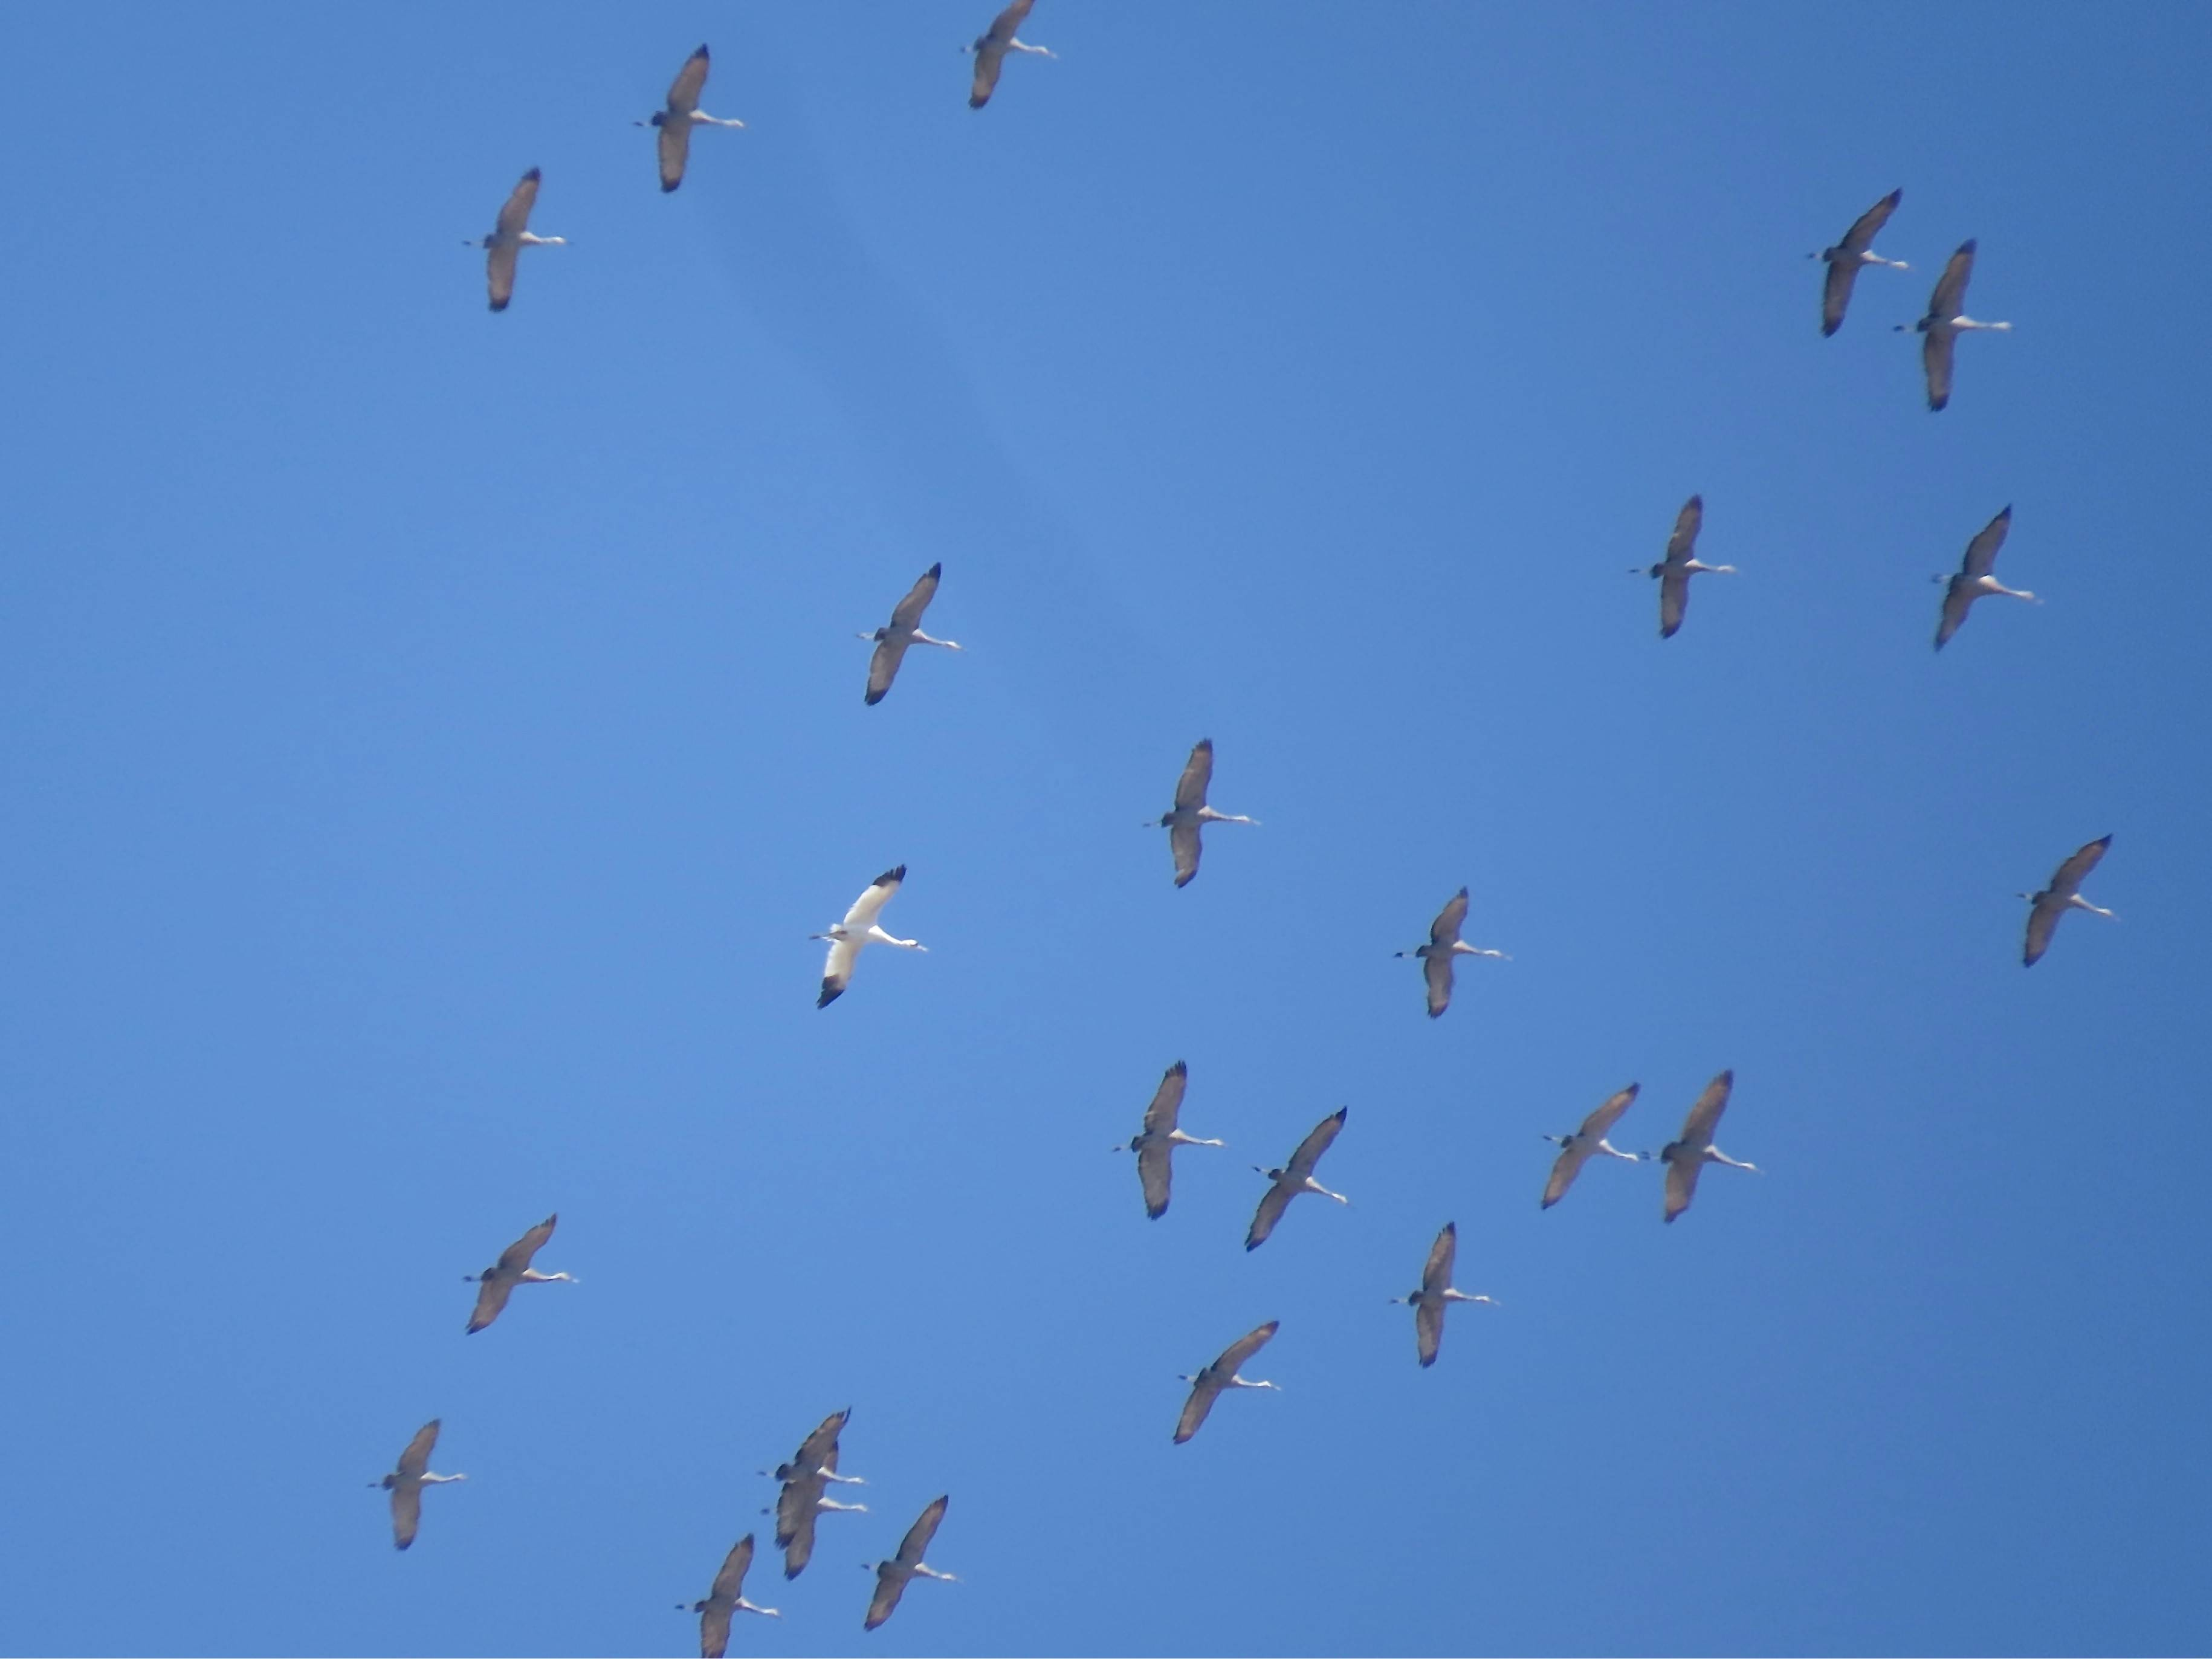 Sharp-eyed birder Jody Zamirowski spotted a rare whooping crane migrating with a flock of sandhill cranes on March 30 at the Morton Arboretum. Whooping cranes once were on the verge of extinction with just eight birds. Now the population is around 500.